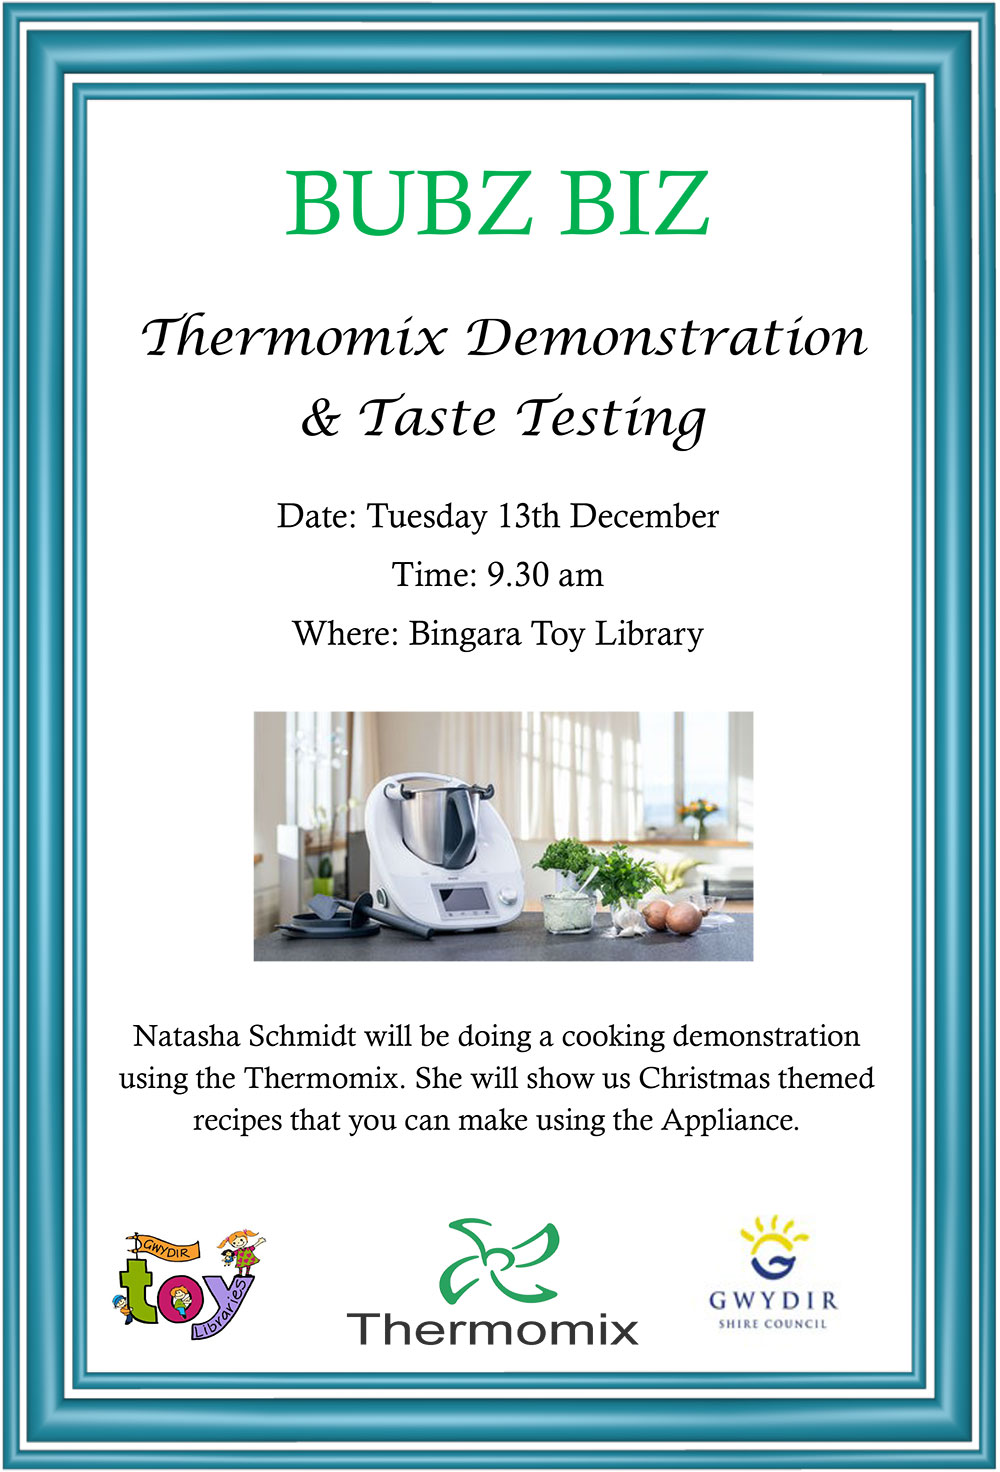 Thermomix Demonstration & Taste Testing